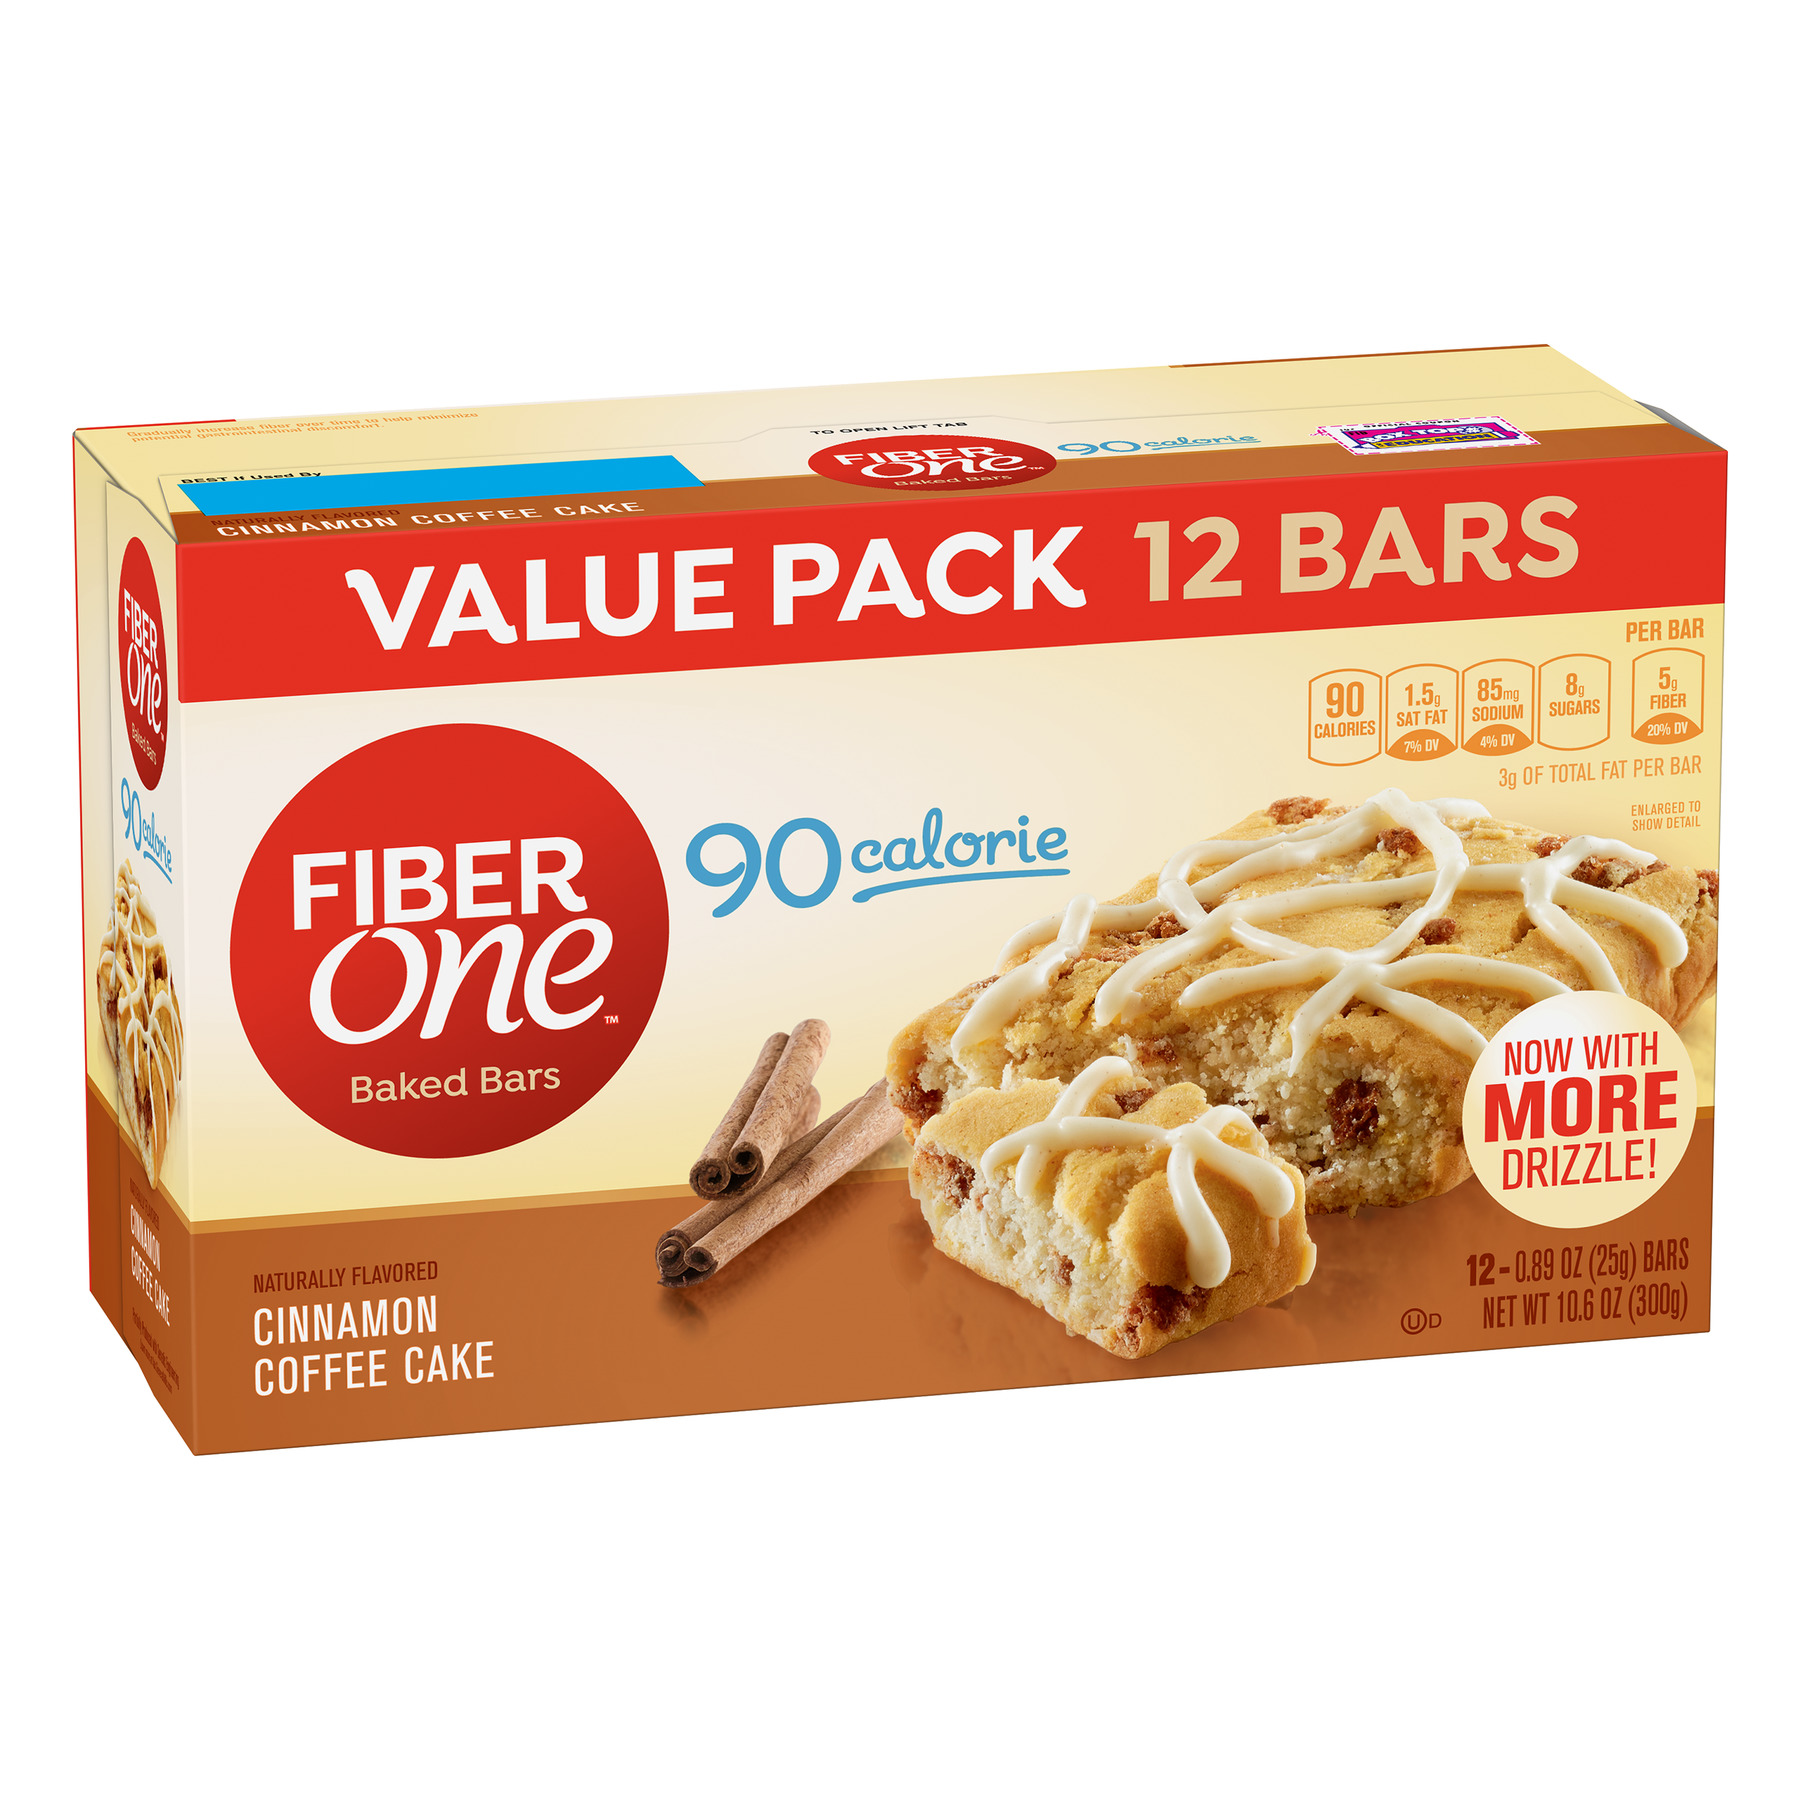 Fiber One 90 Calorie Cinnamon Coffee Cake 12 Fiber Bars